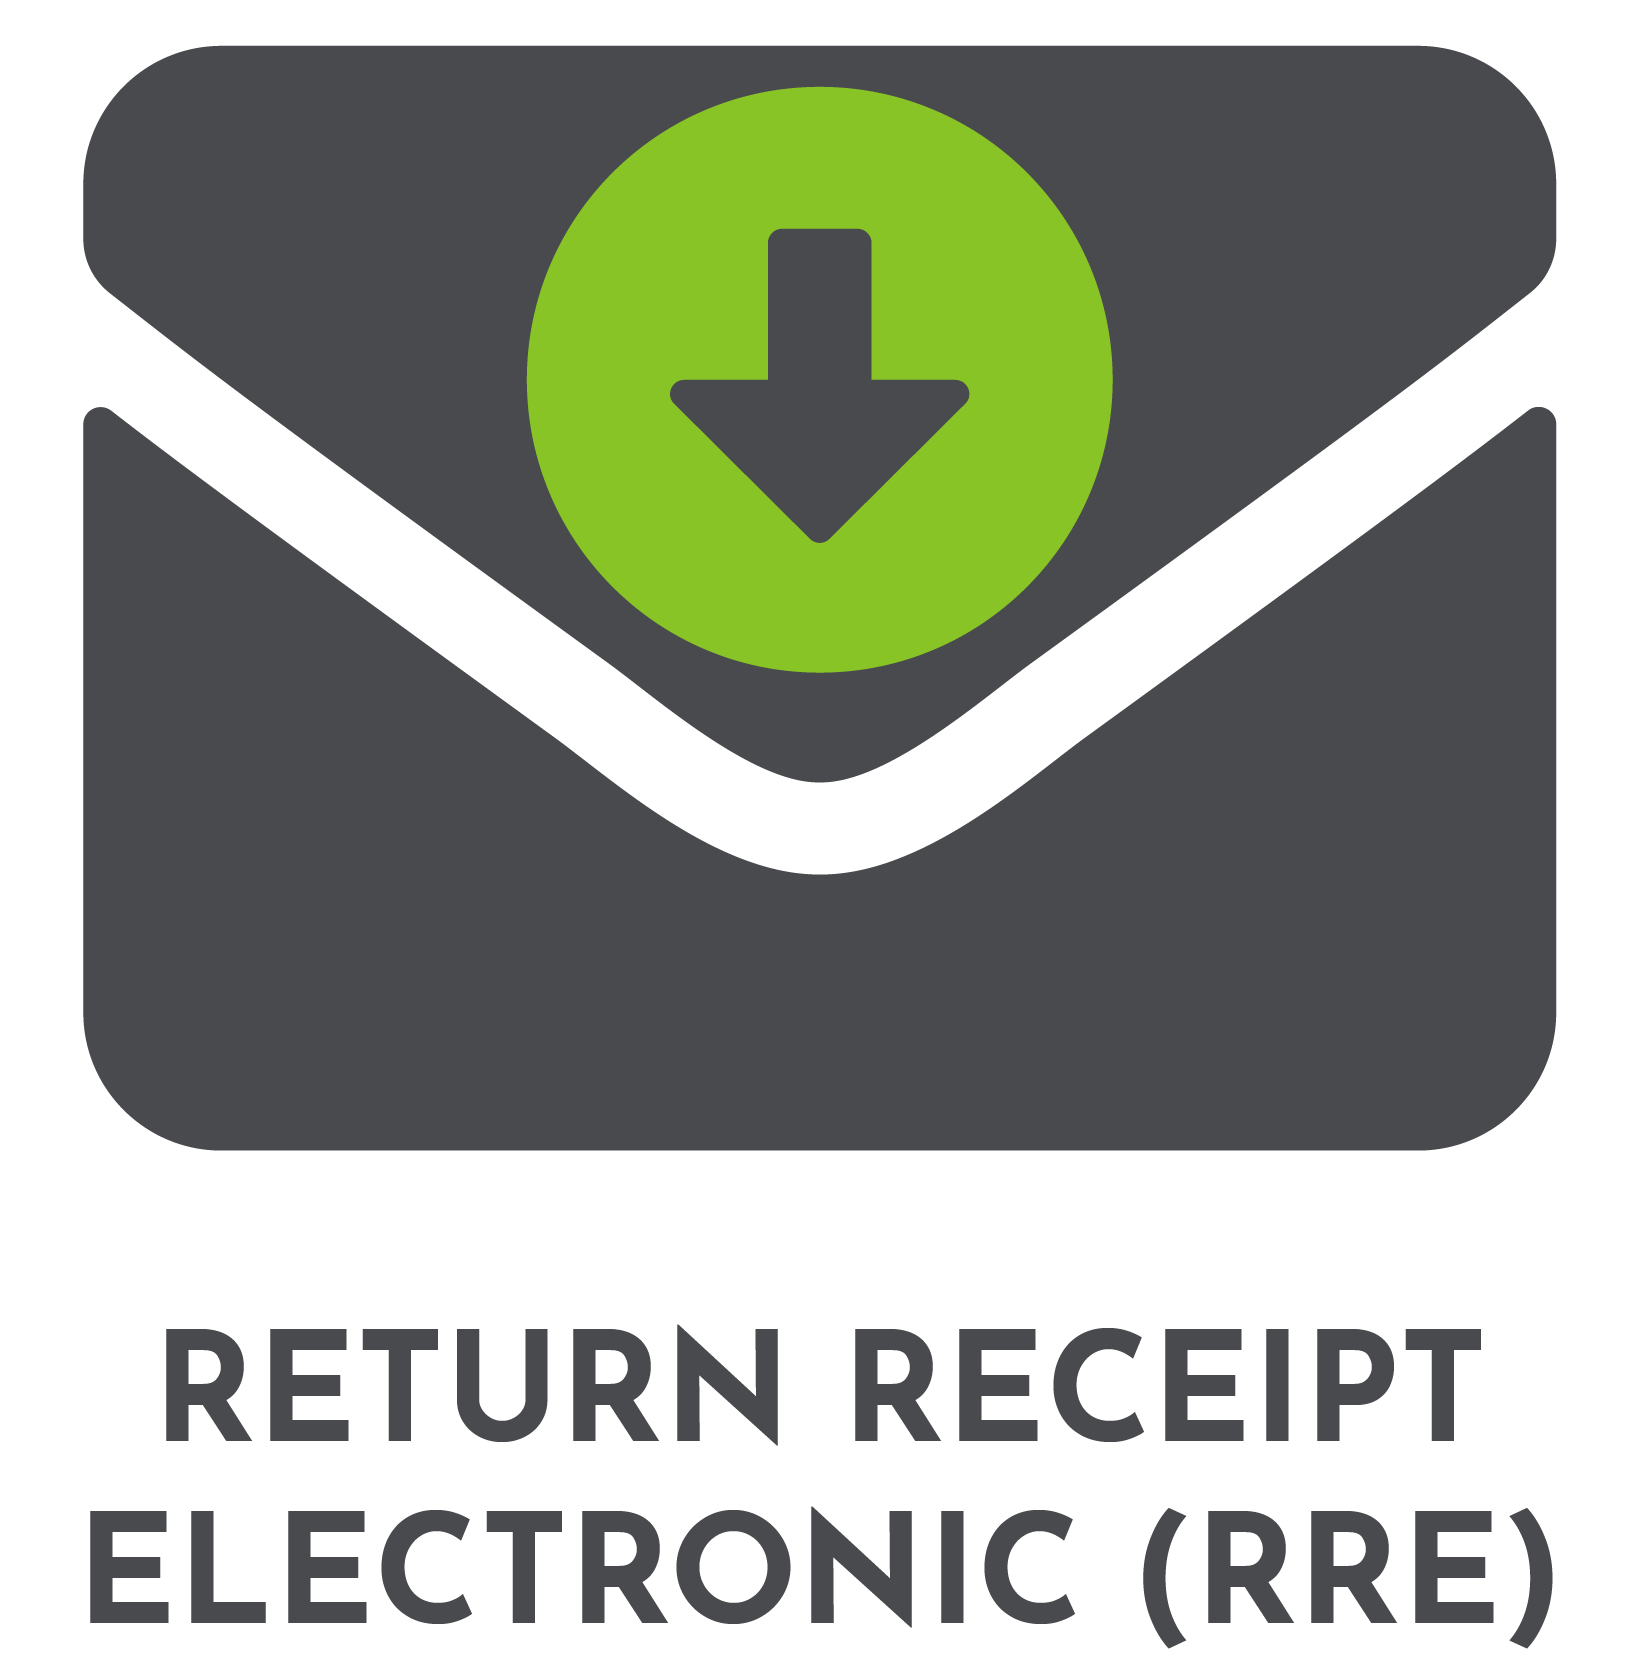 Return Receipt Electronic